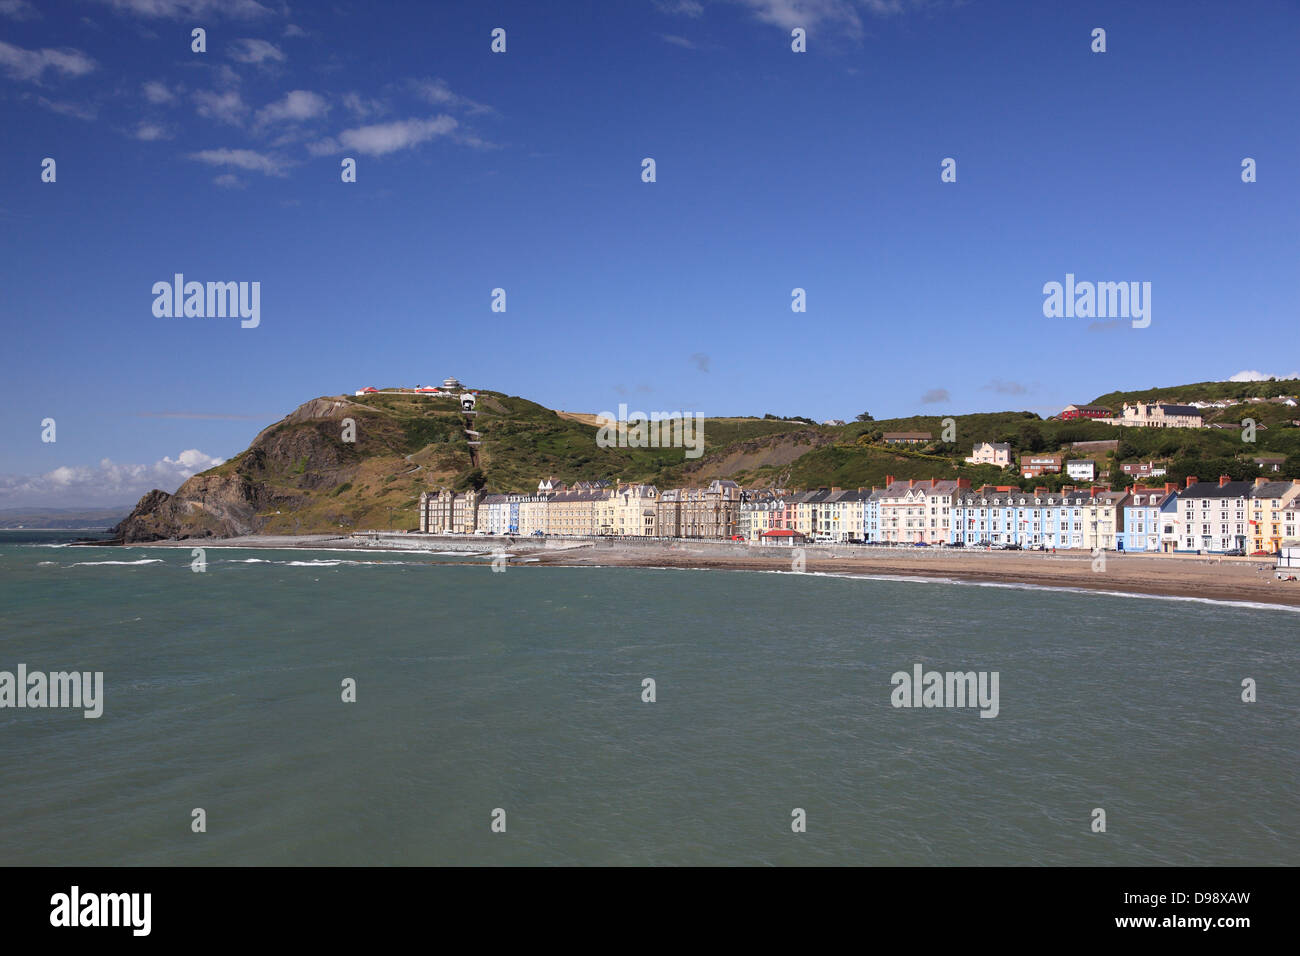 View of Aberystwyth beach, promenade and Constitution Hill with its funicular railway Stock Photo